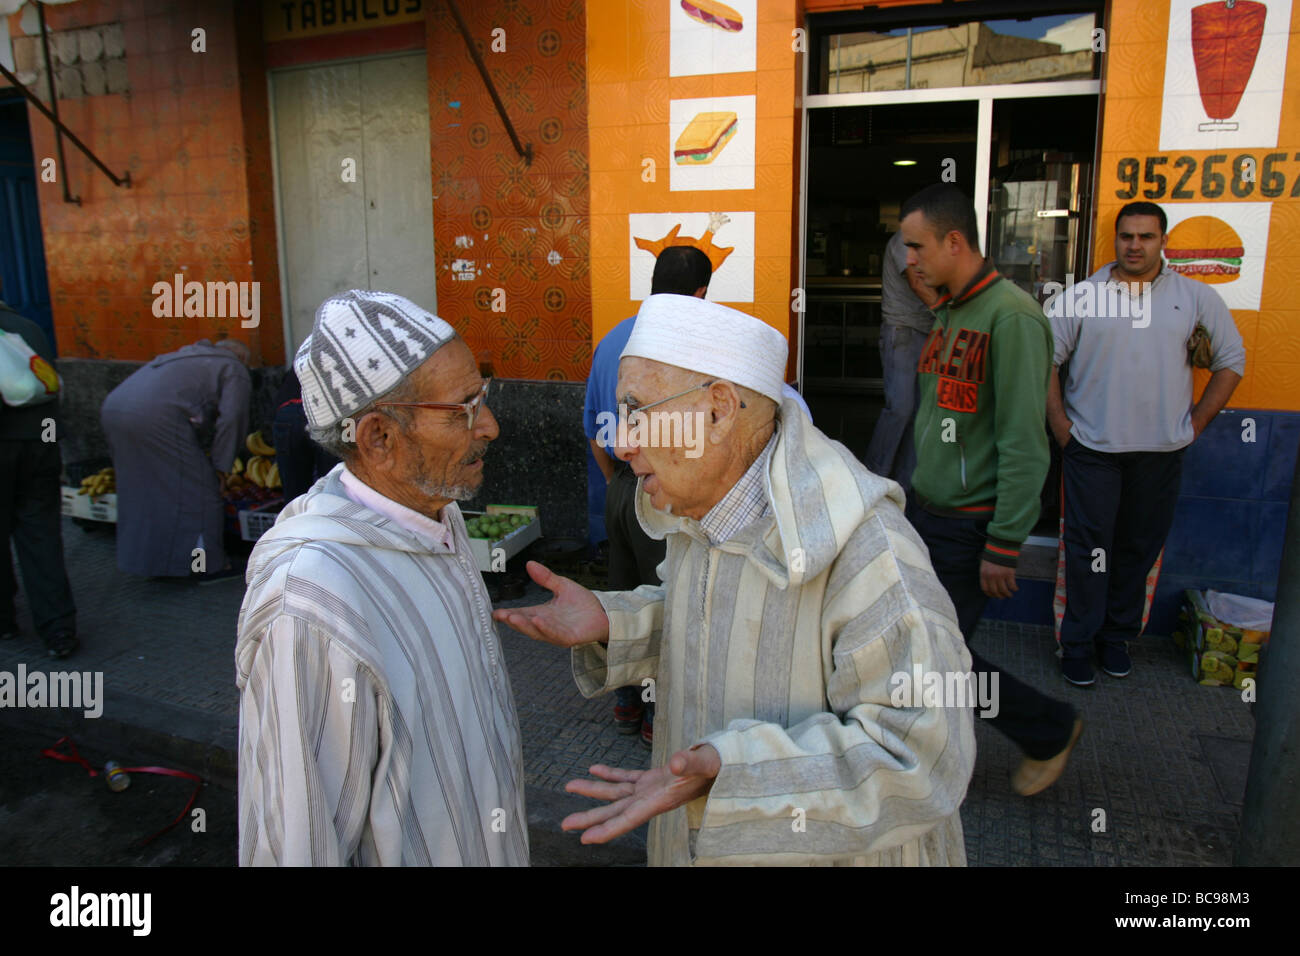 Spanish muslims talk in the streets of Melilla Spain - Stock Image